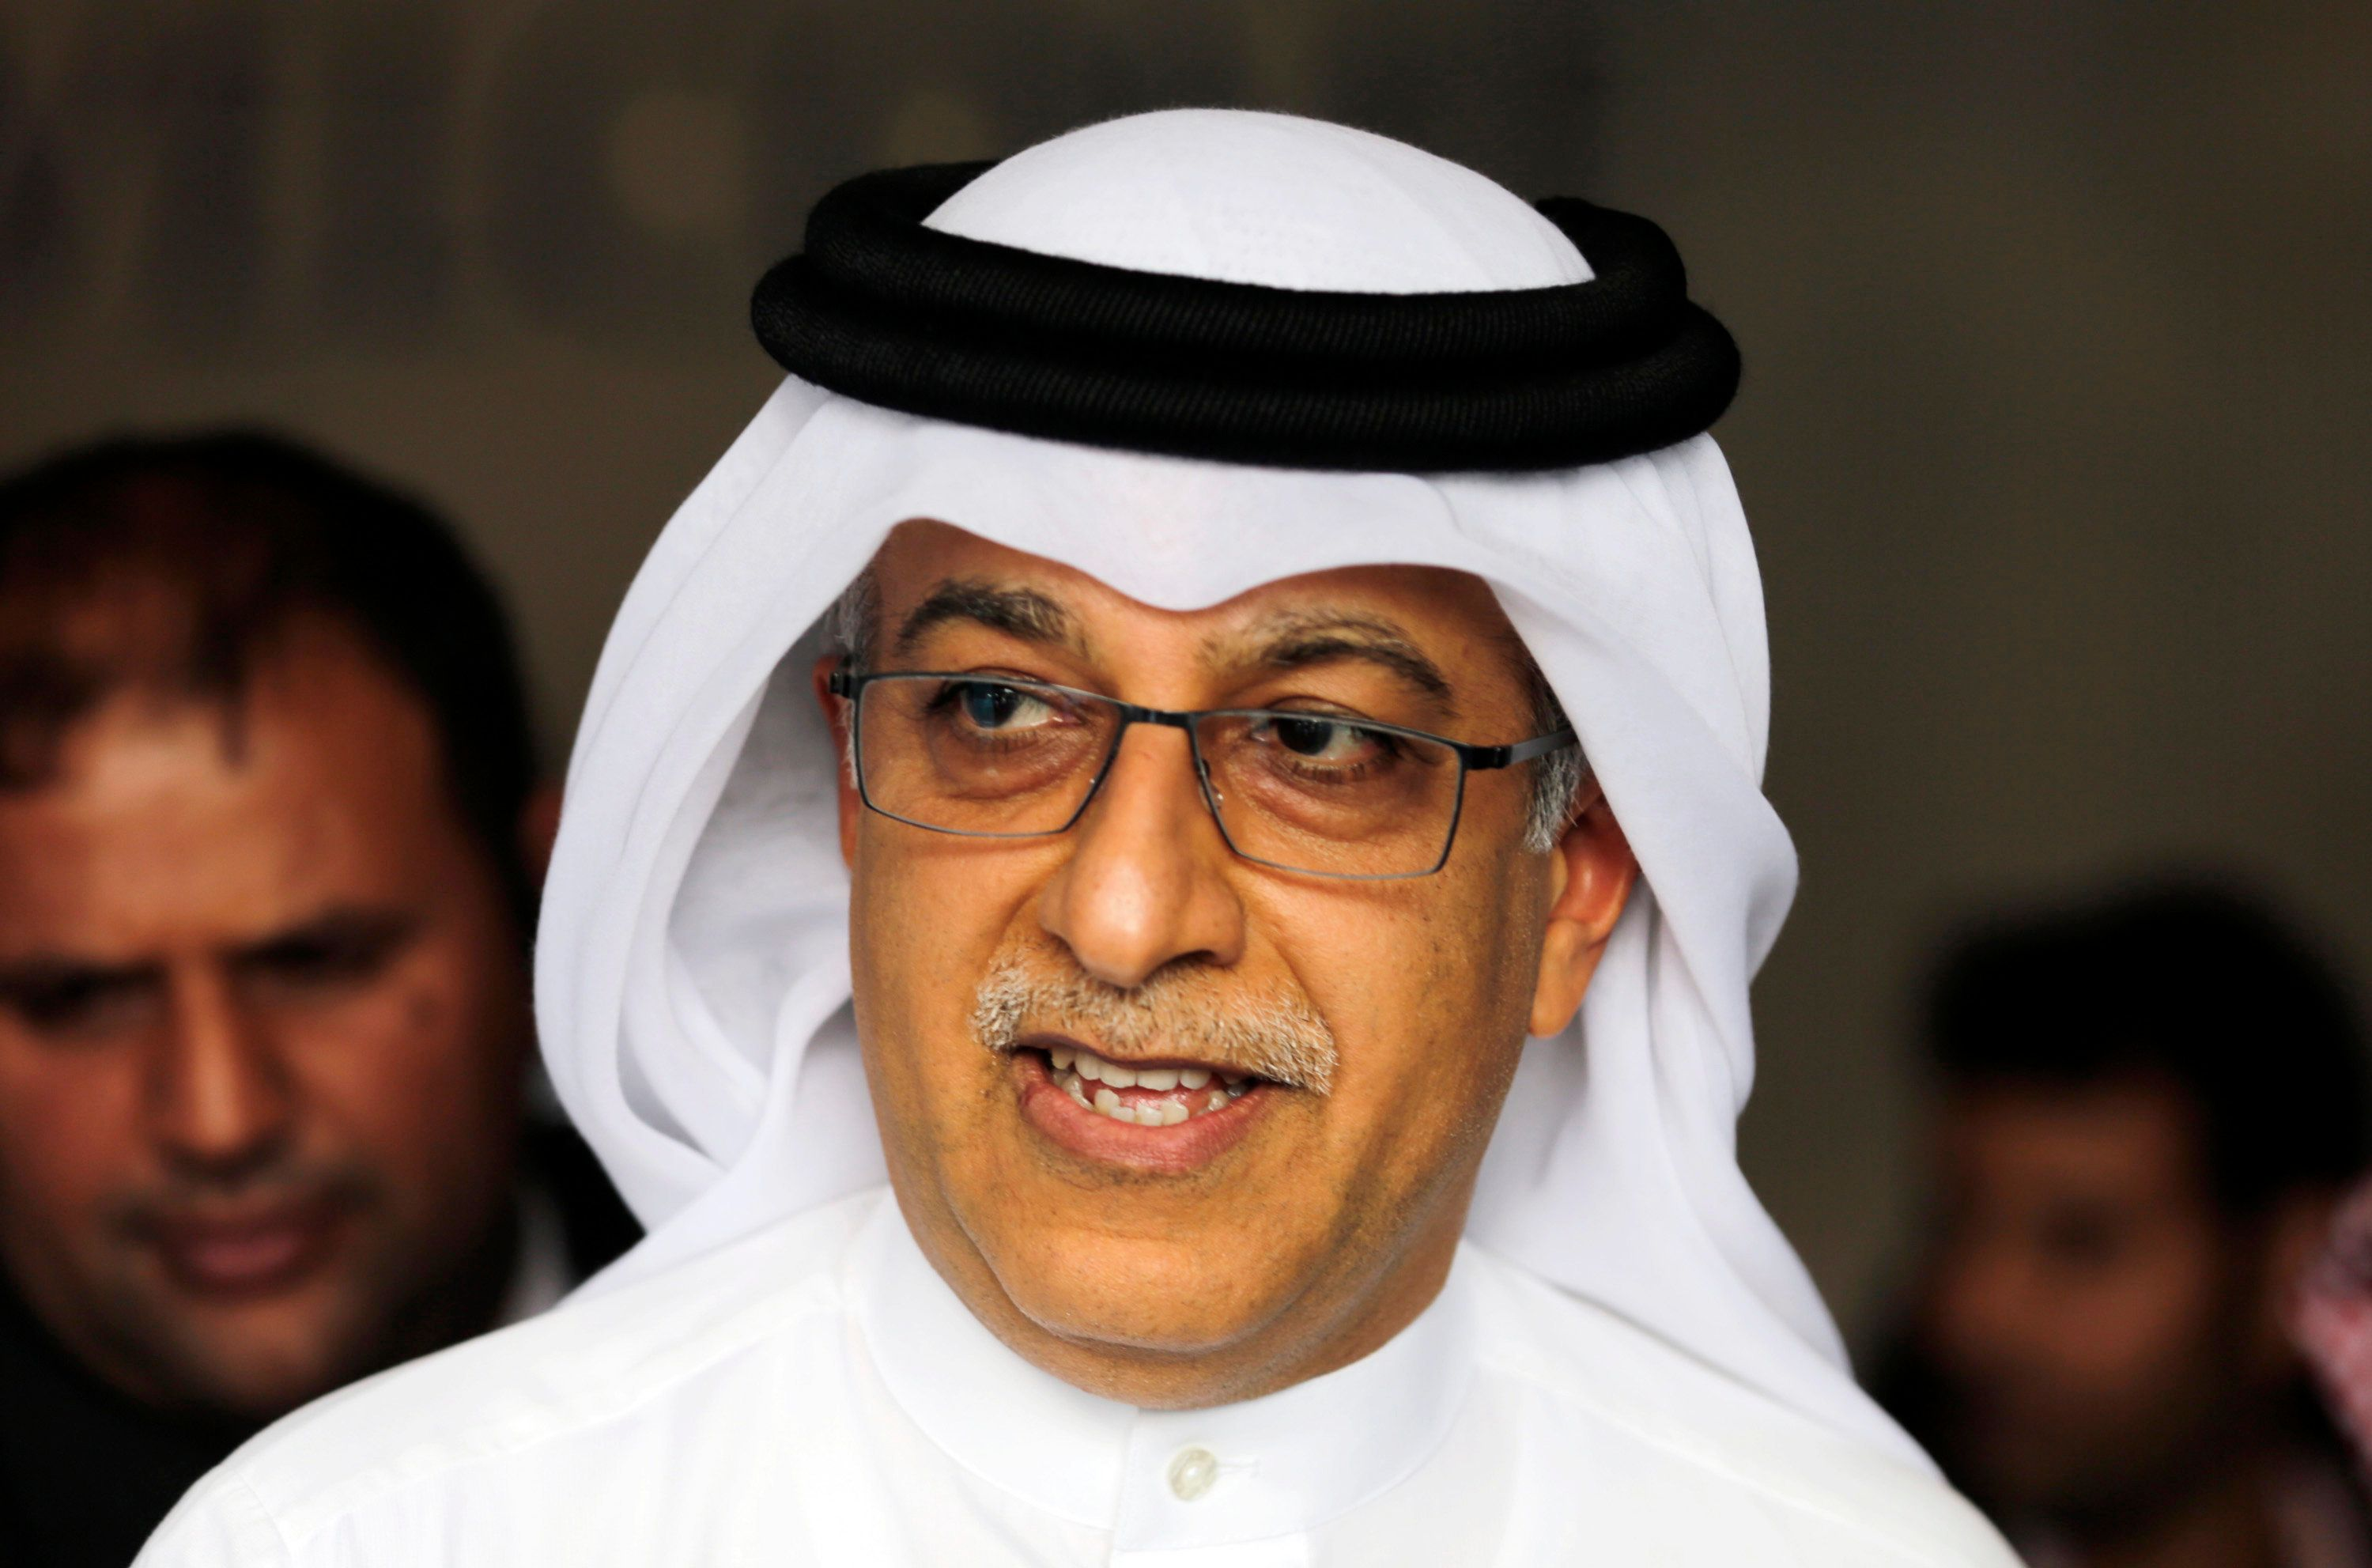 FILE - In this Thursday, April 30, 2015 file photo, Asian Football Confederation President Sheikh Salman bin Ebrahim Al Khalifa leaves the AFC Congress in Manama, Bahrain. Bahrains state news agency says Asian soccer chief Sheikh Salman bin Ebrahim Al Khalifa has formally launched his bid to replace Sepp Blatter as FIFA president. (AP Photo/Hasan Jamali, file)